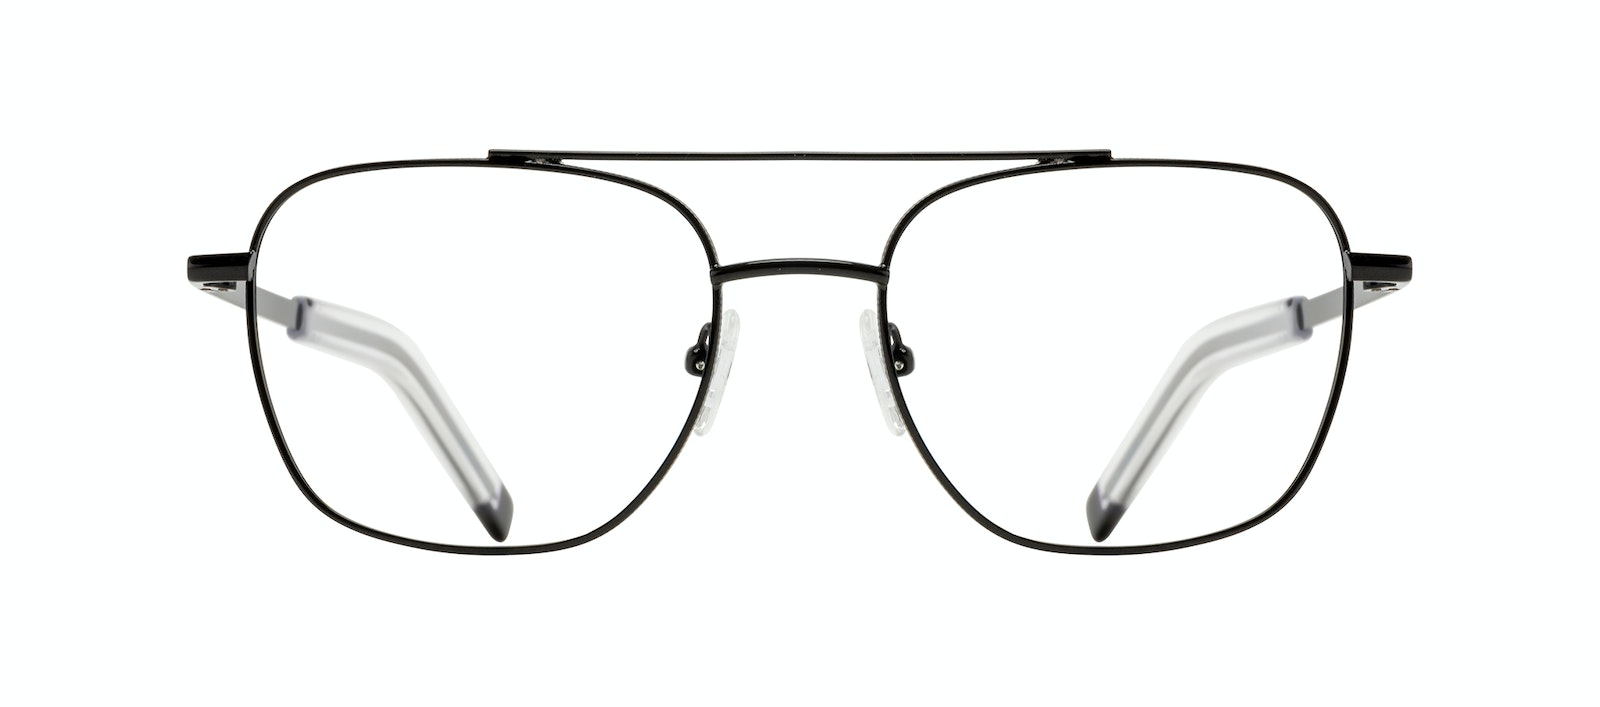 Affordable Fashion Glasses Aviator Eyeglasses Men Drift Black Front